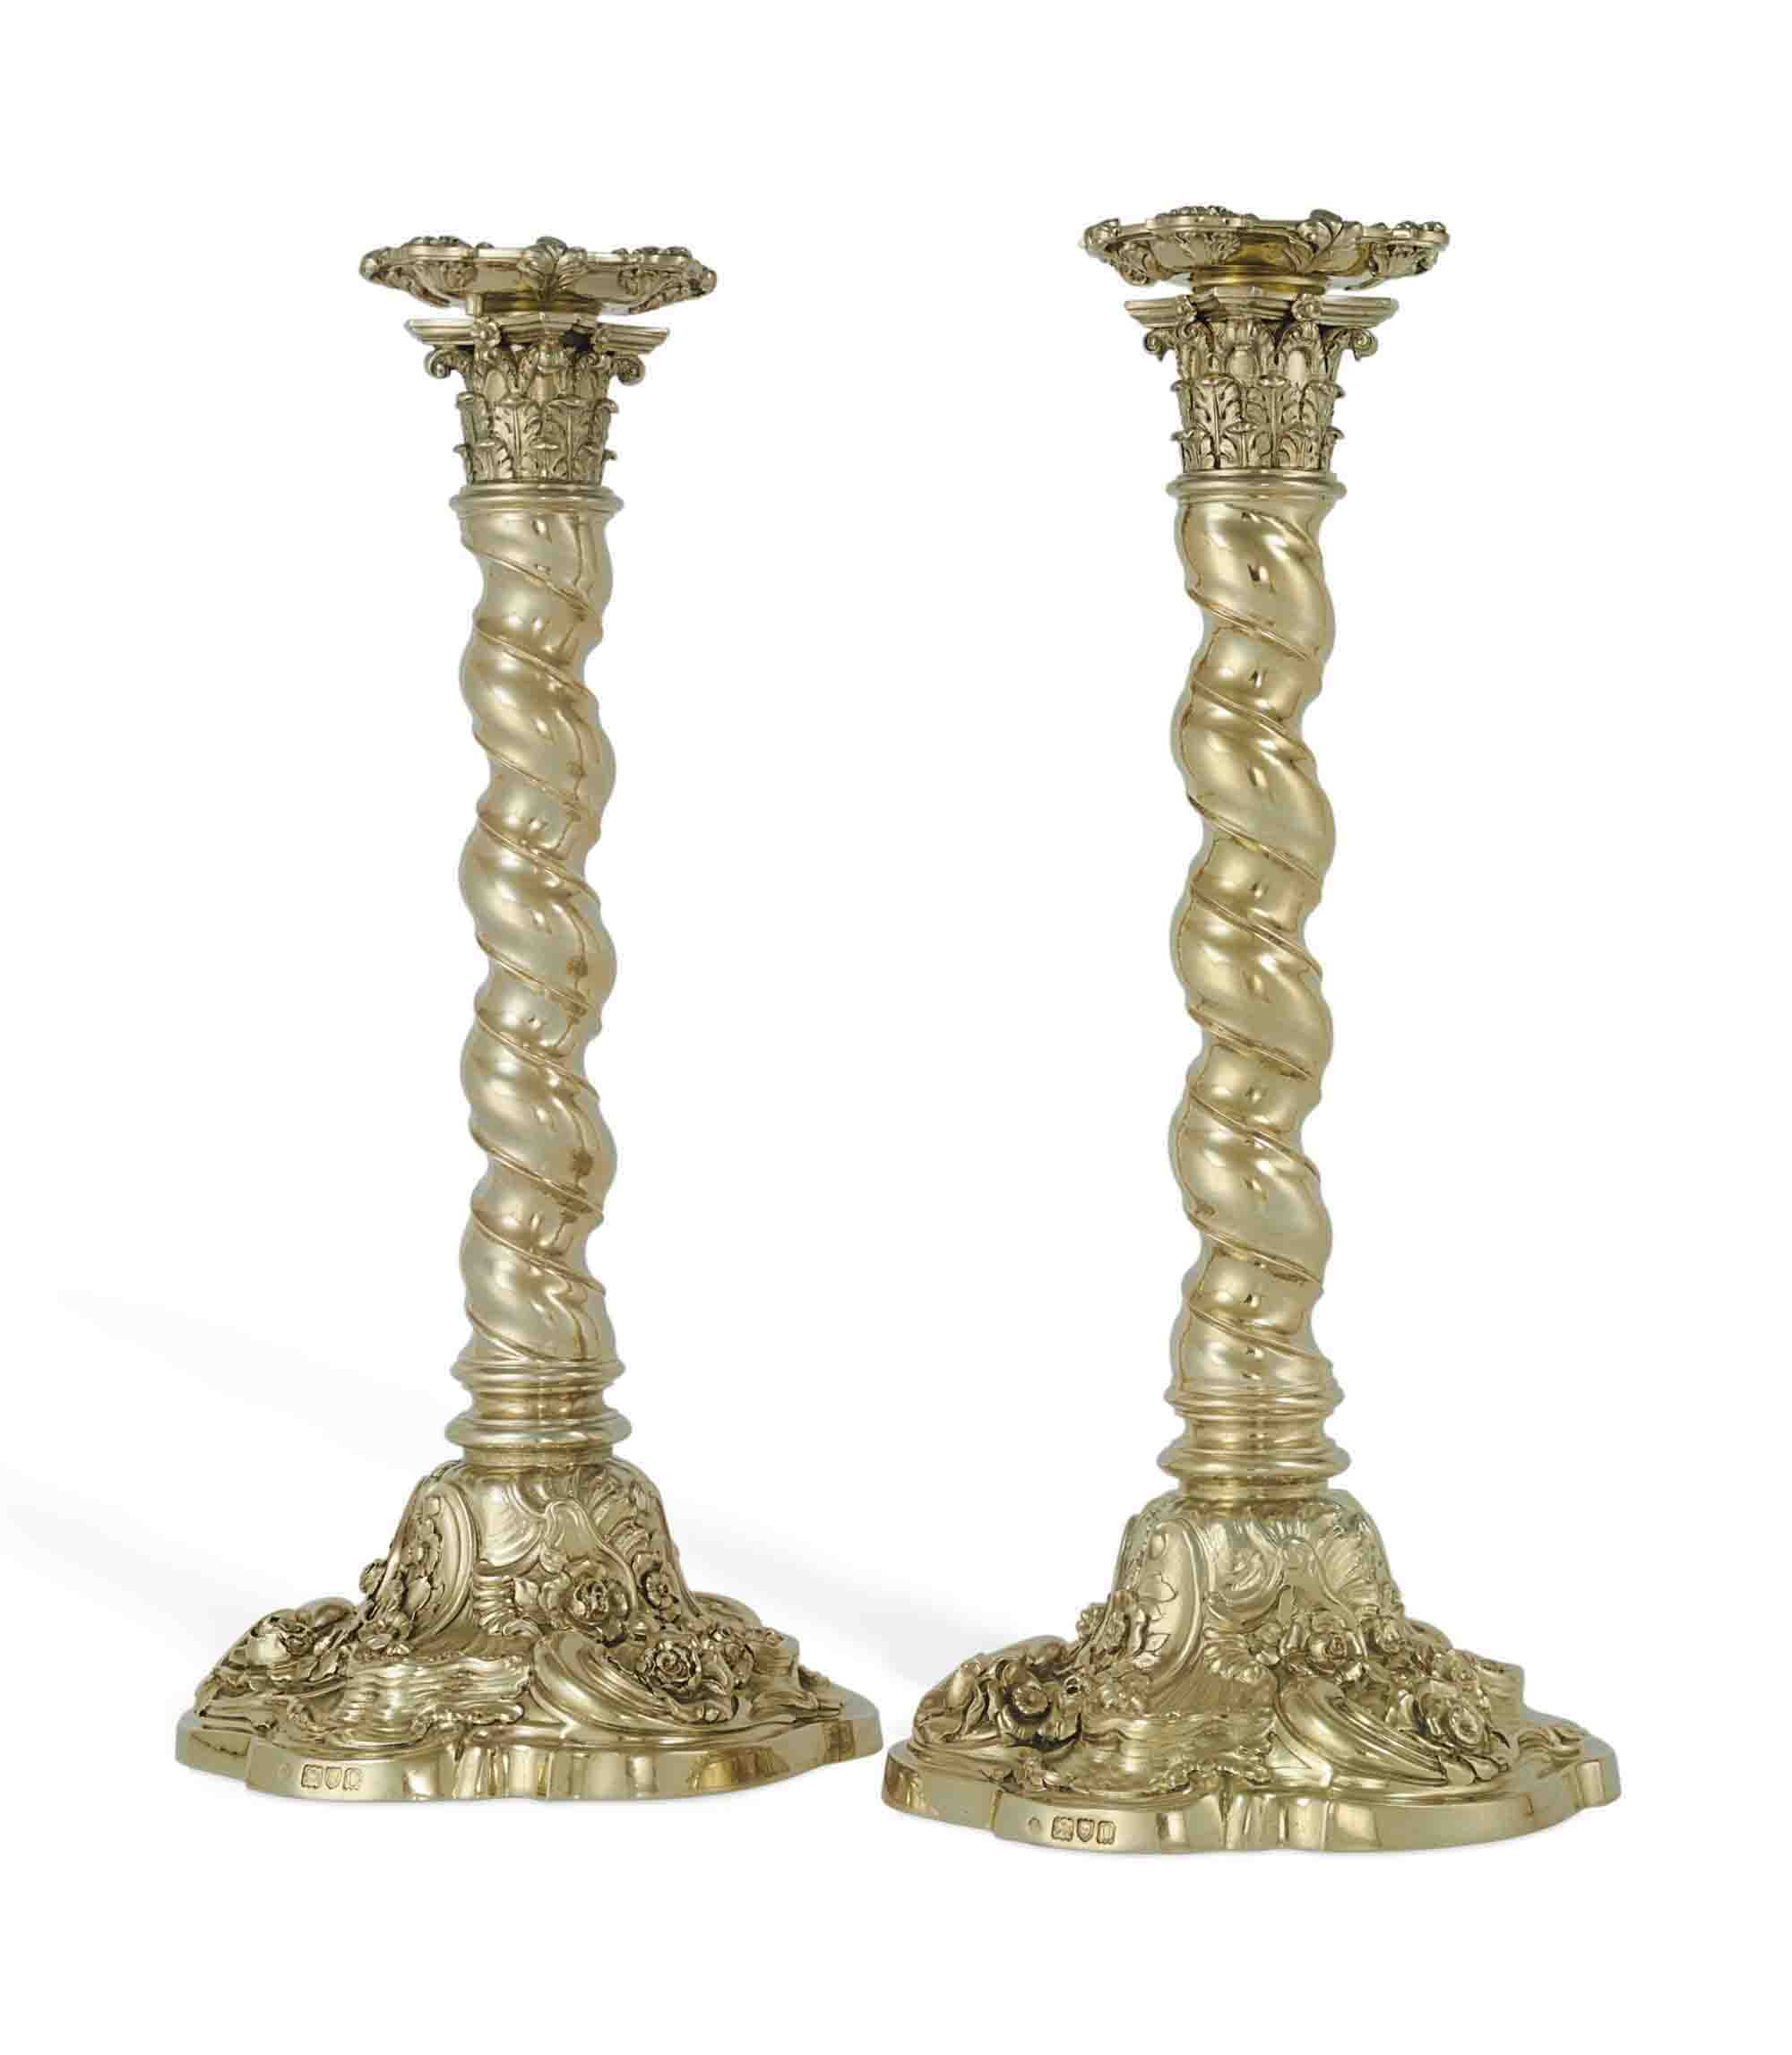 A PAIR OF GEORGE V SILVER-GILT CANDLESTICKS